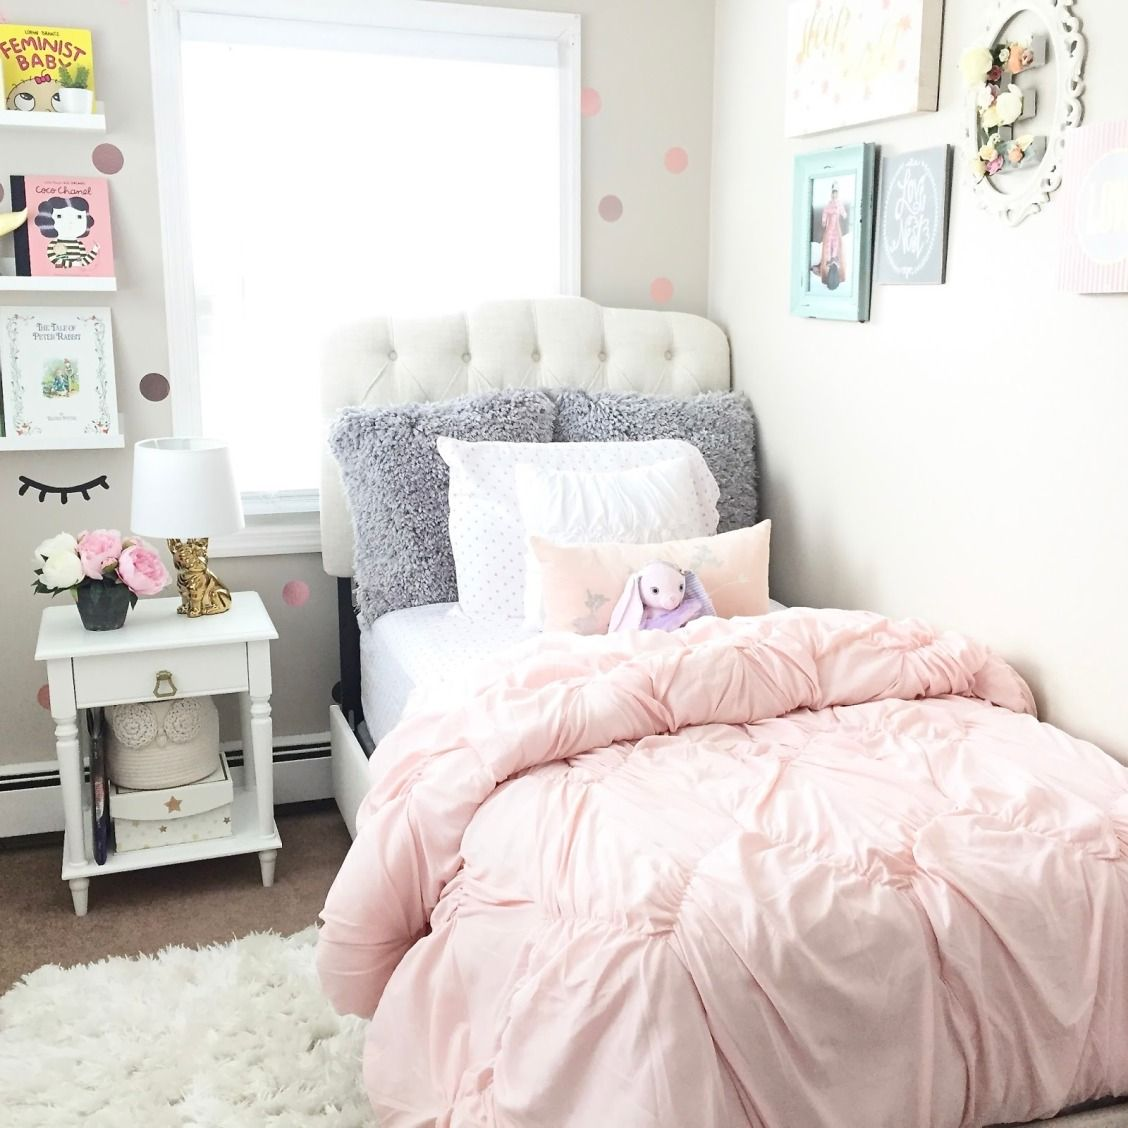 the suit catalog own leg a choosing and bed beds height by create your needs style to particular headboard taste cyo lg